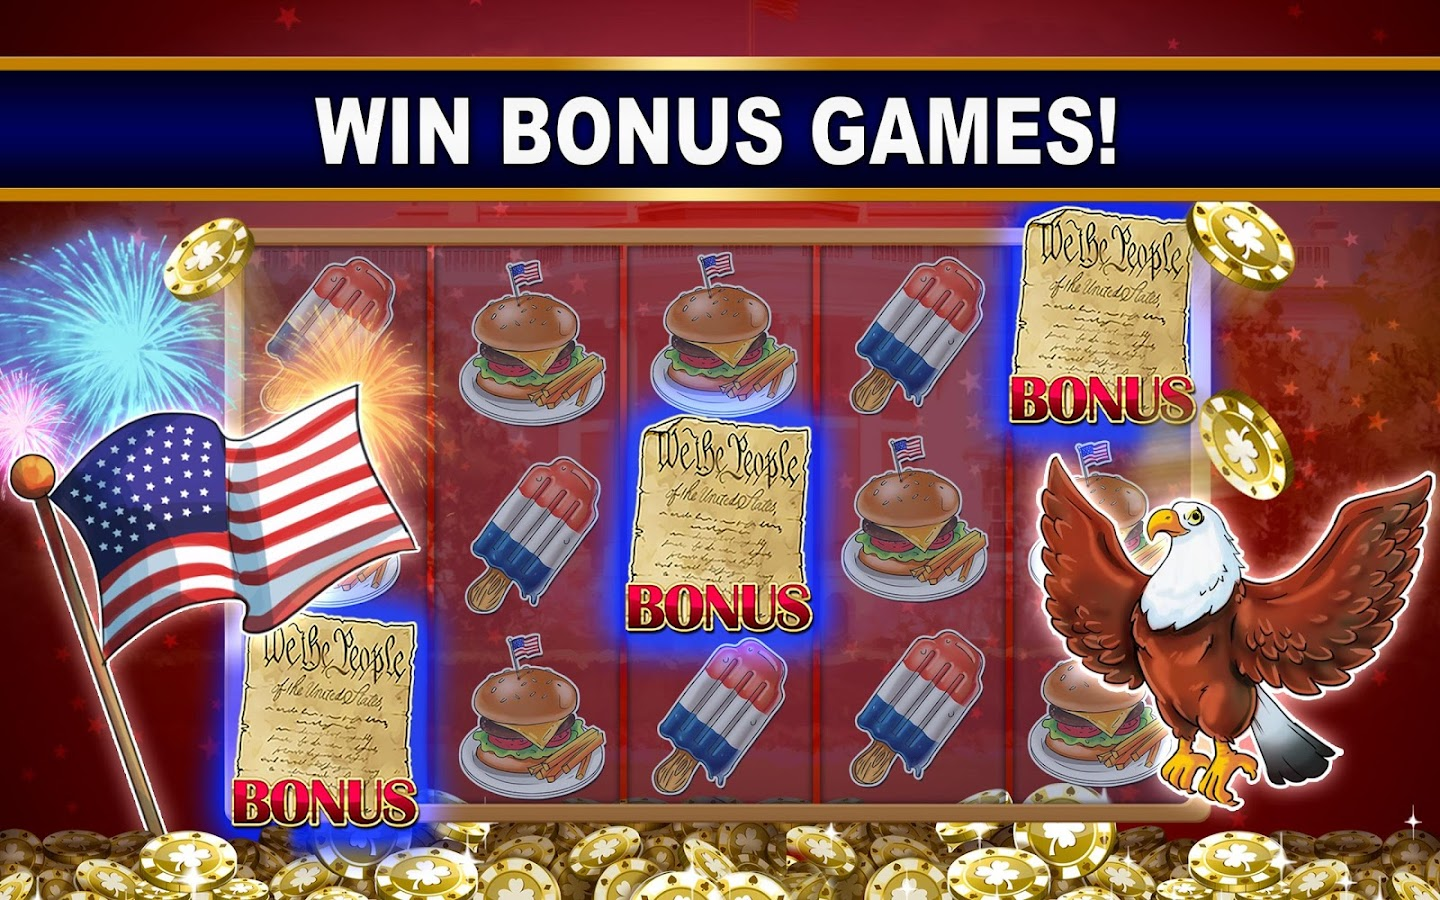 Play Free Bonus Games Online With a Bonus at Slots of Vegas